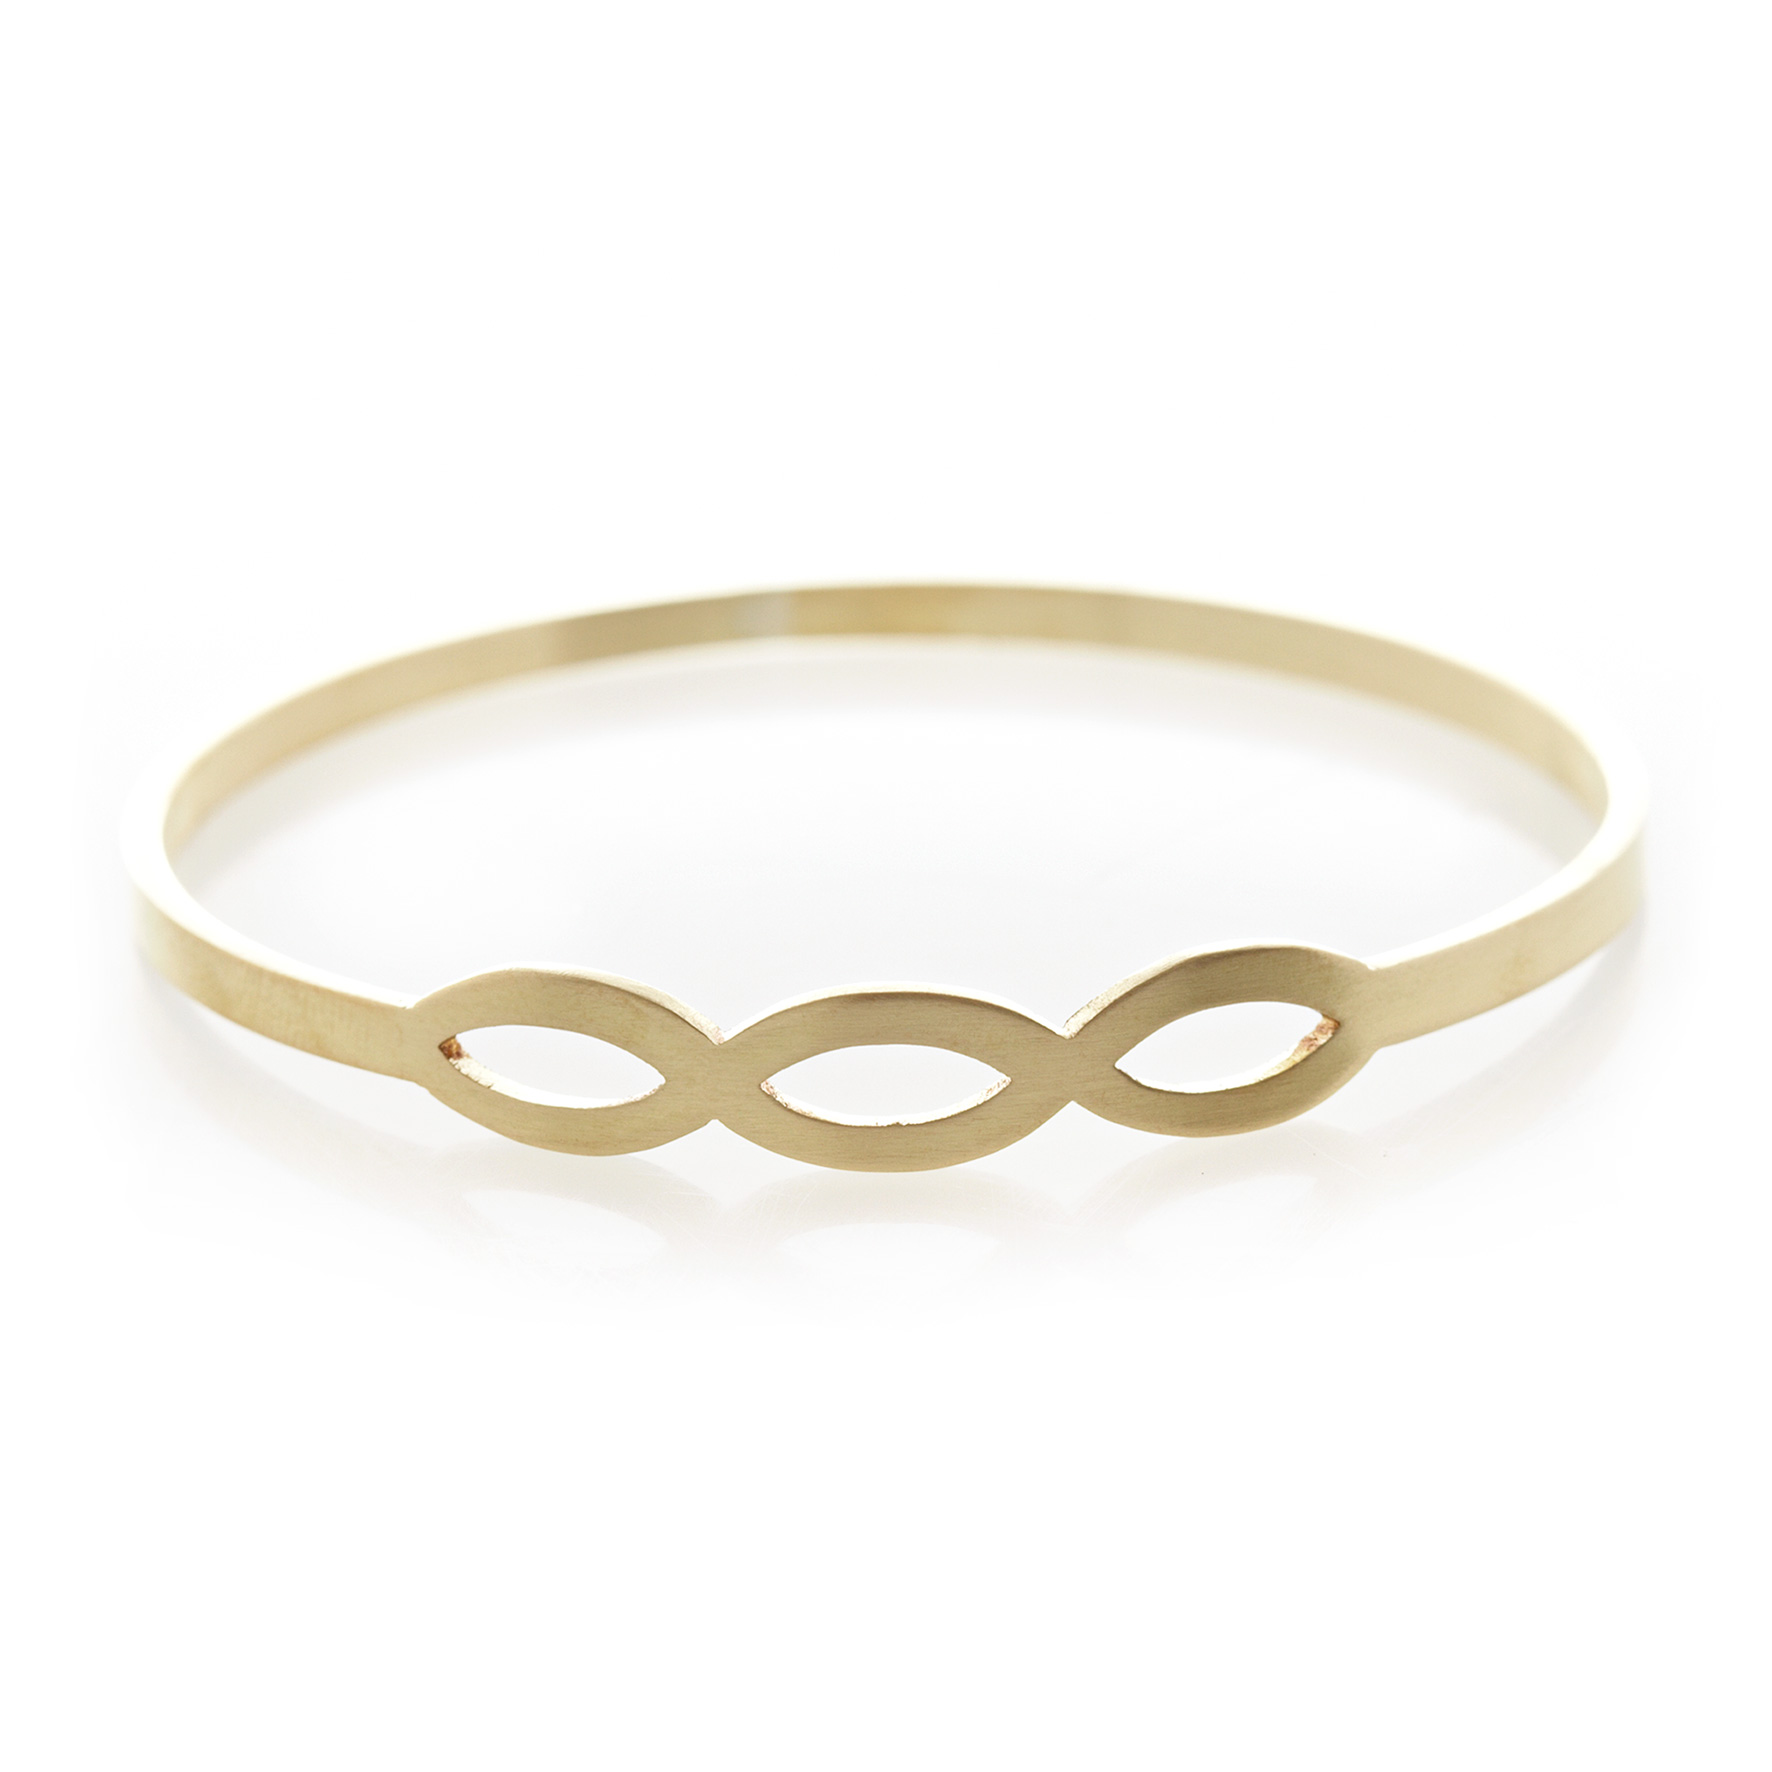 Tryptic pod brass bangle